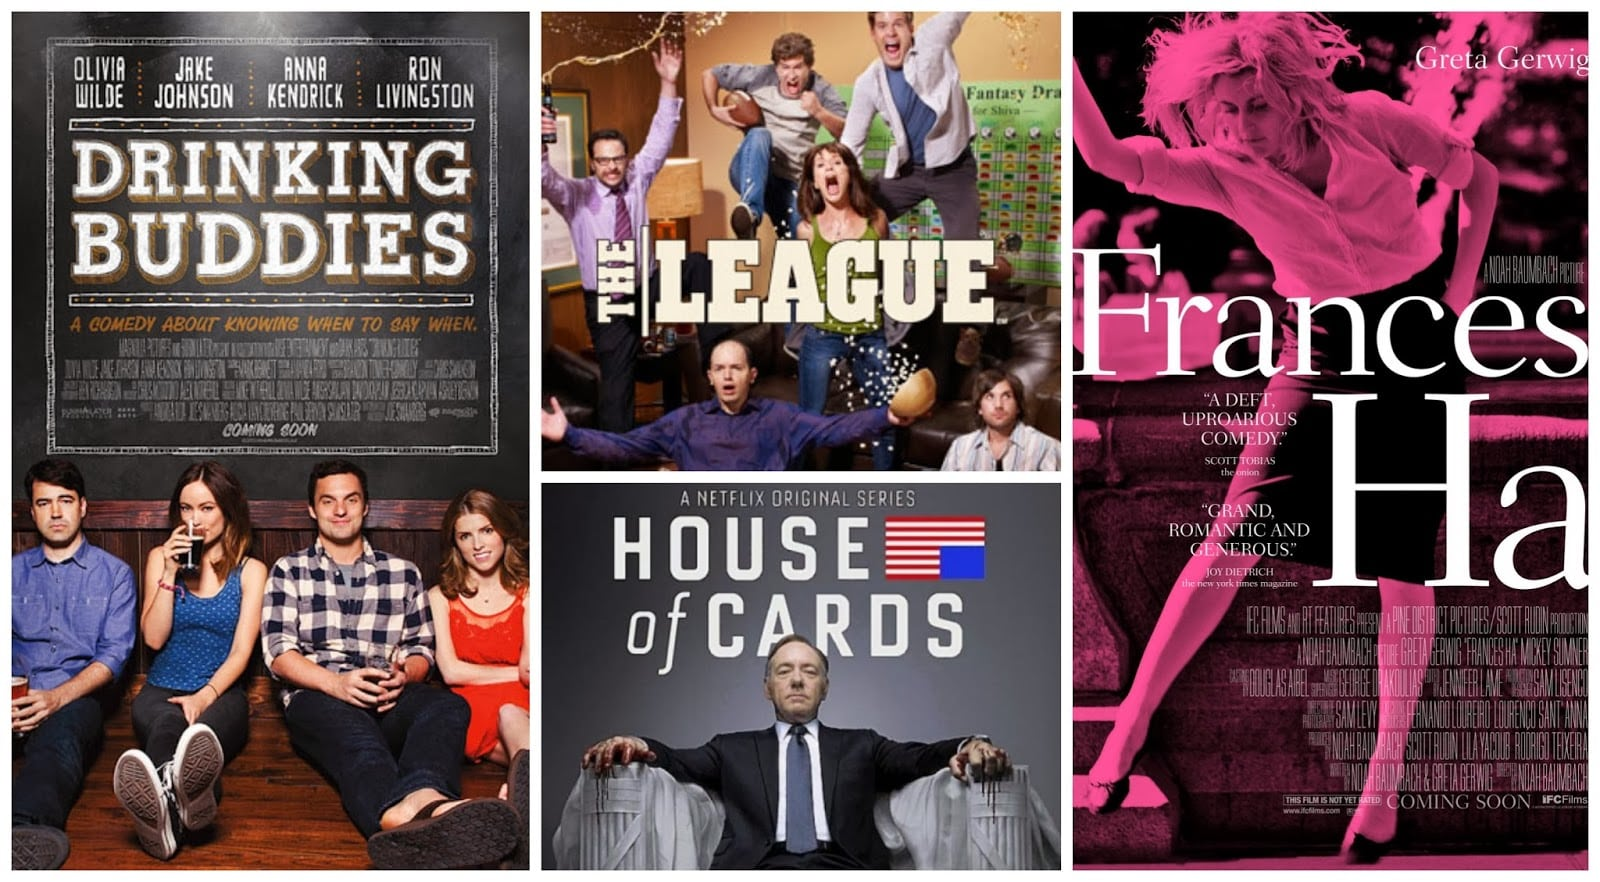 Snowed In: What to Watch on Netflix - Lake Shore Lady